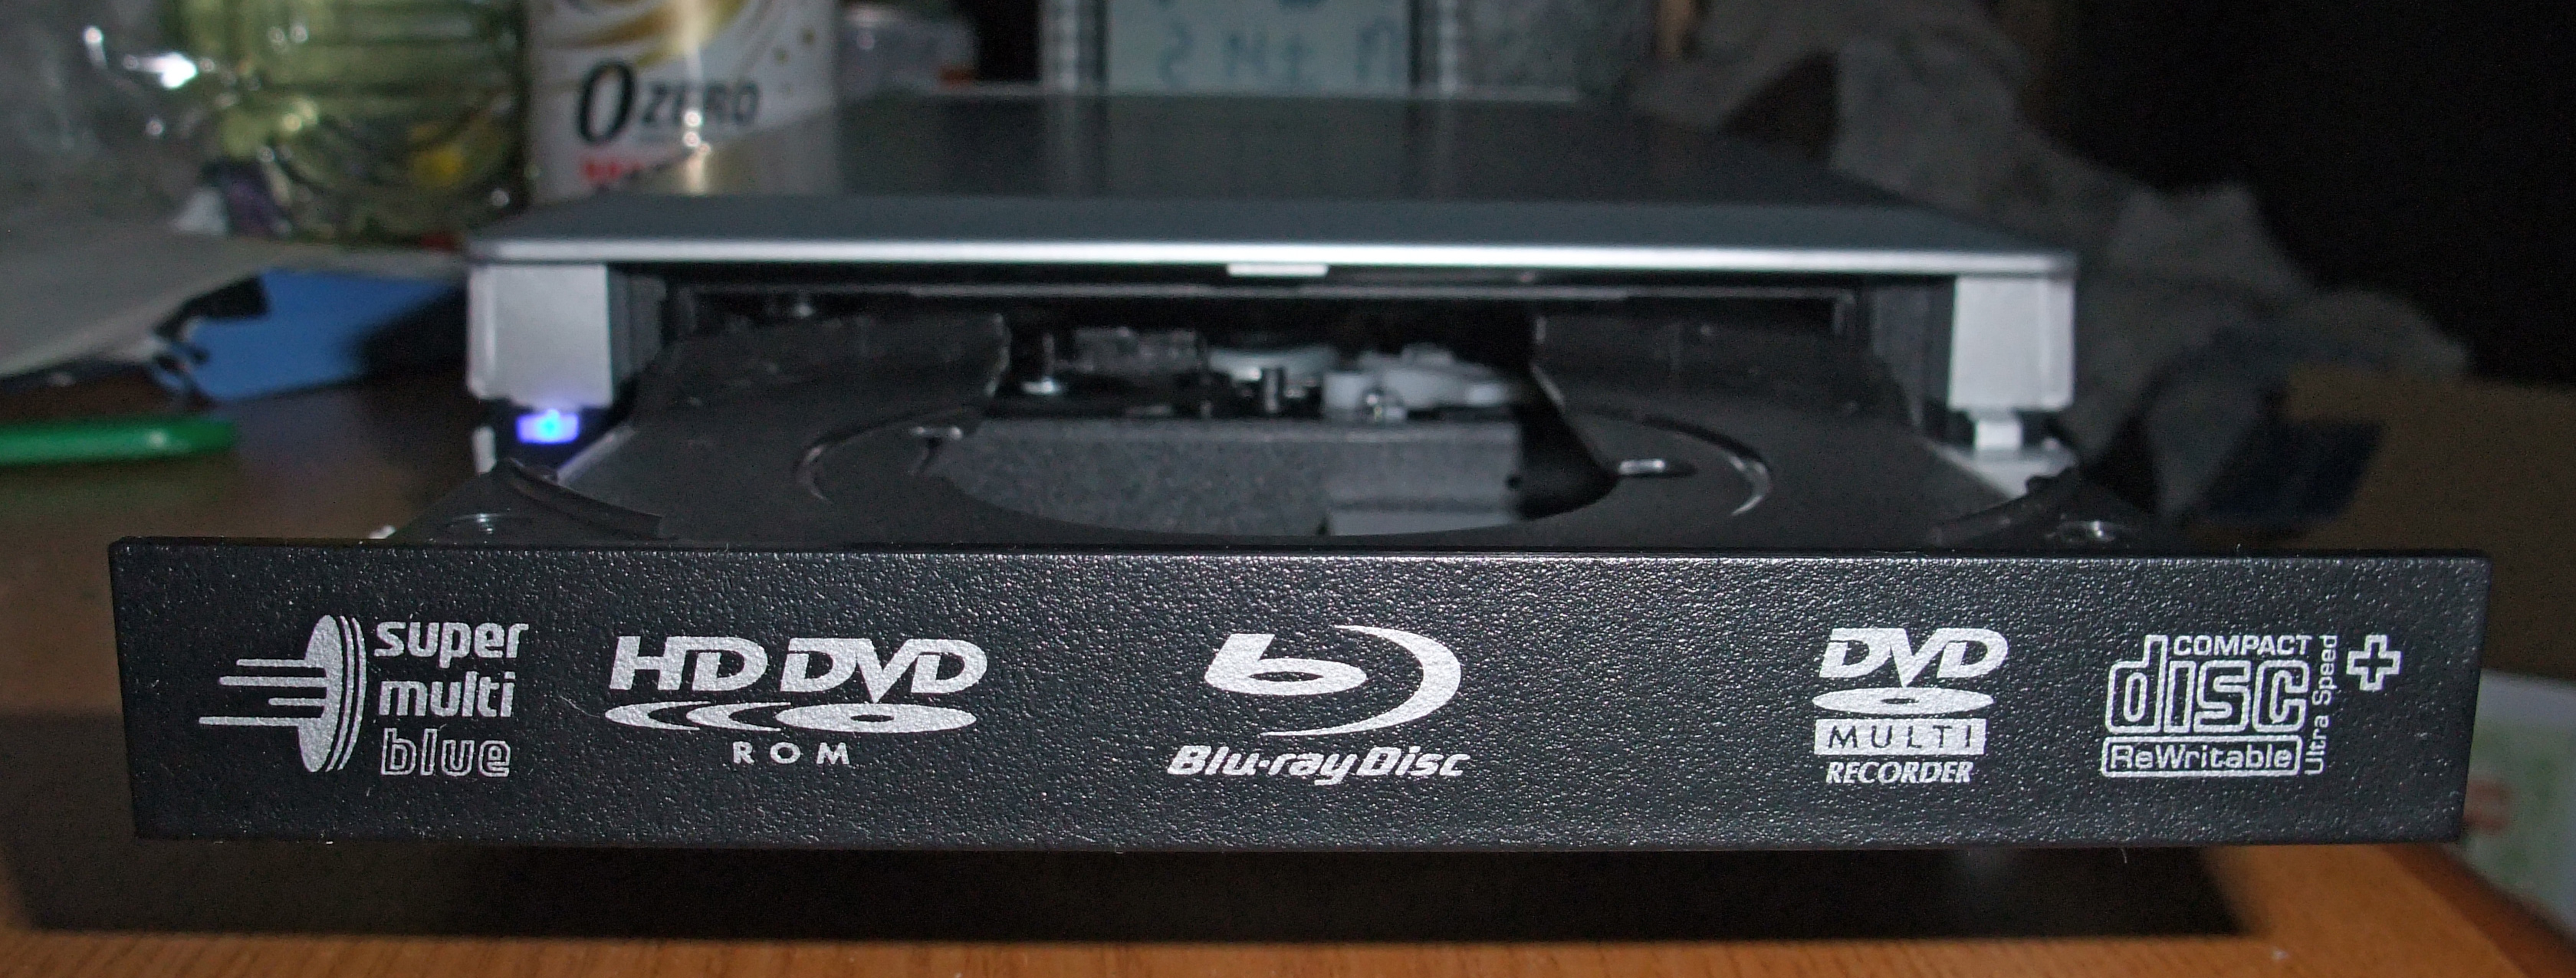 optical disc and hd dvd Hd-dvd (high definition digital versatile disk) – blue laser optical disk despite high definition digital versatile disc hd-dvd) being the original dvd forum approved successor to the dvd format, it was ultimately doomed, eventually consigned to history by the rival blu-ray disk (bd) technology.